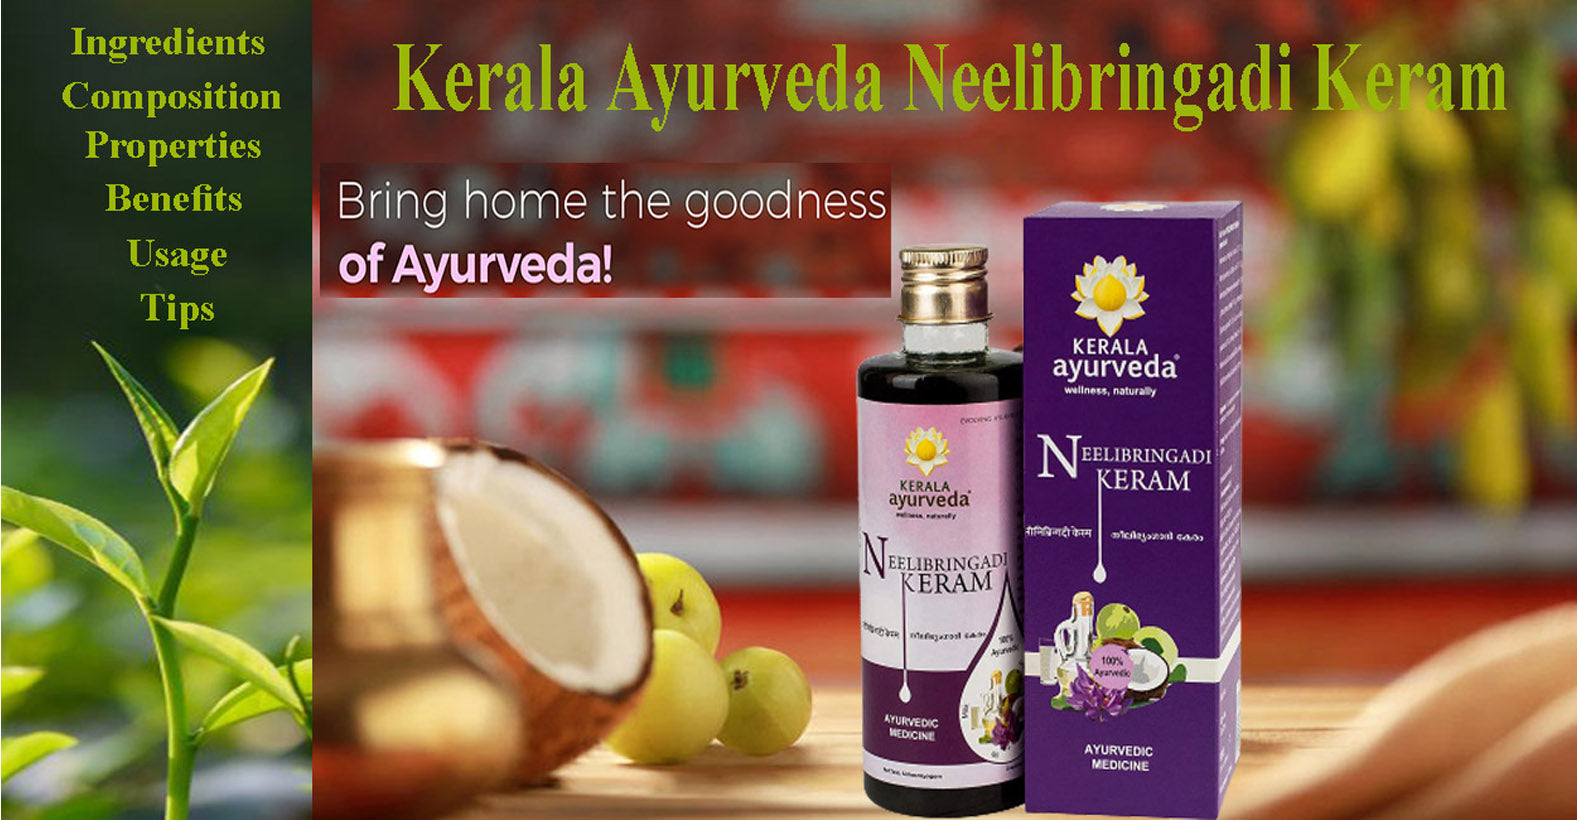 Kerala Ayurveda Neelibringadi Keram- Ingredients, Composition, Properties, Benefits, Usage, Tips